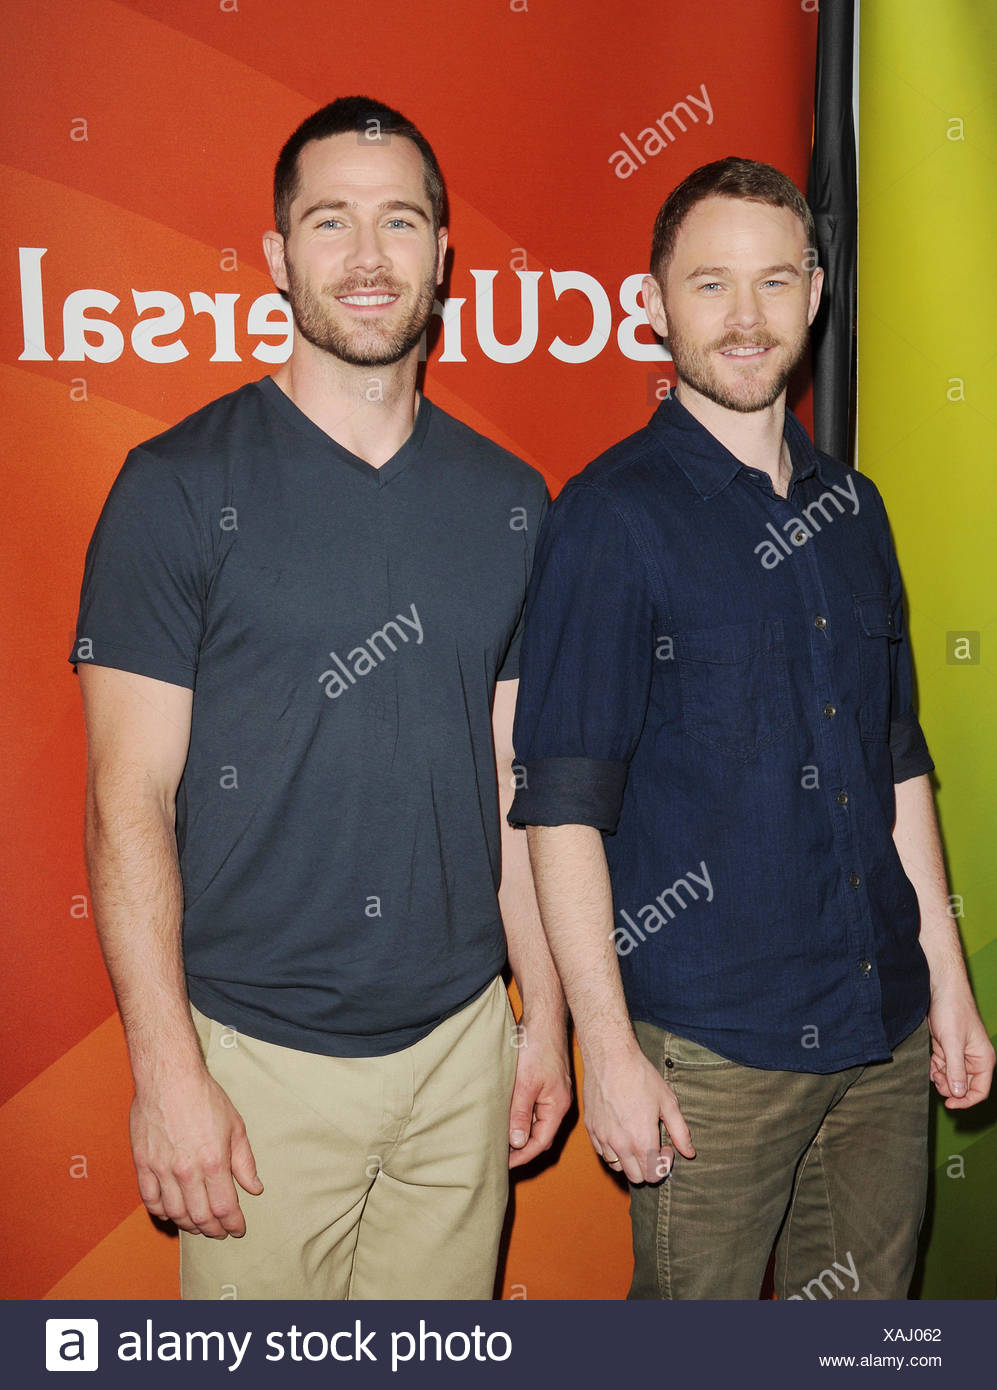 Actors Aaron Ashmore (L) and Luke MacFarlane attend the 2015 NBCUniversal Summer Press Day held at the The Langham Huntington Hotel and Spa on April 02, 2015 in Pasadena, California., Additional-Rights-Clearances-NA - Stock Image